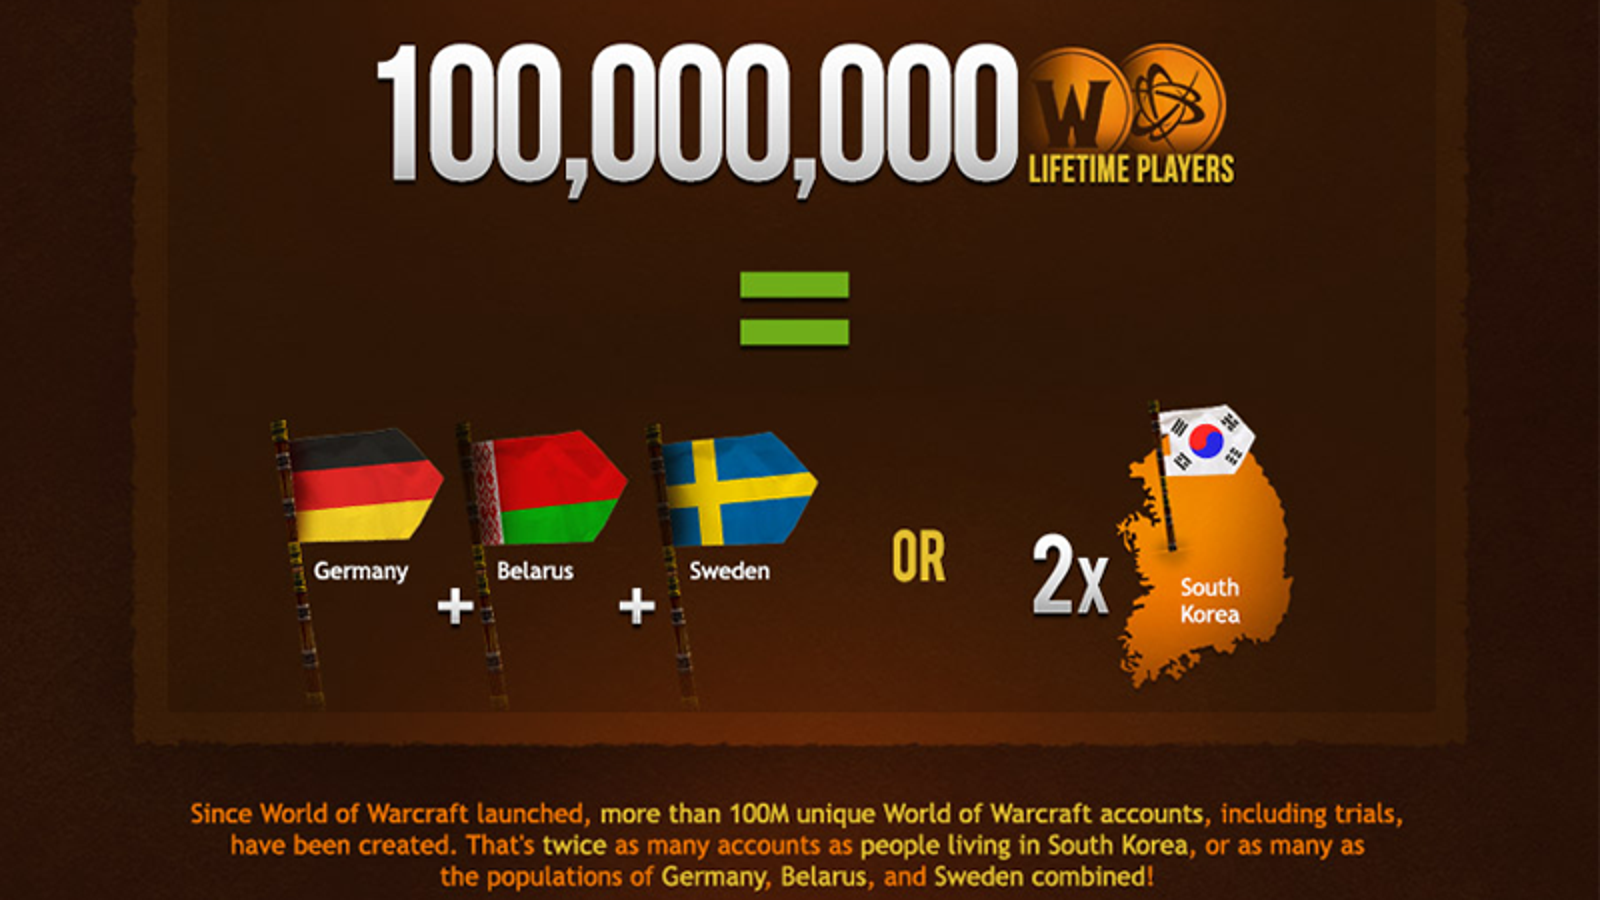 100 Million people have played World of Warcraft, and other fun facts